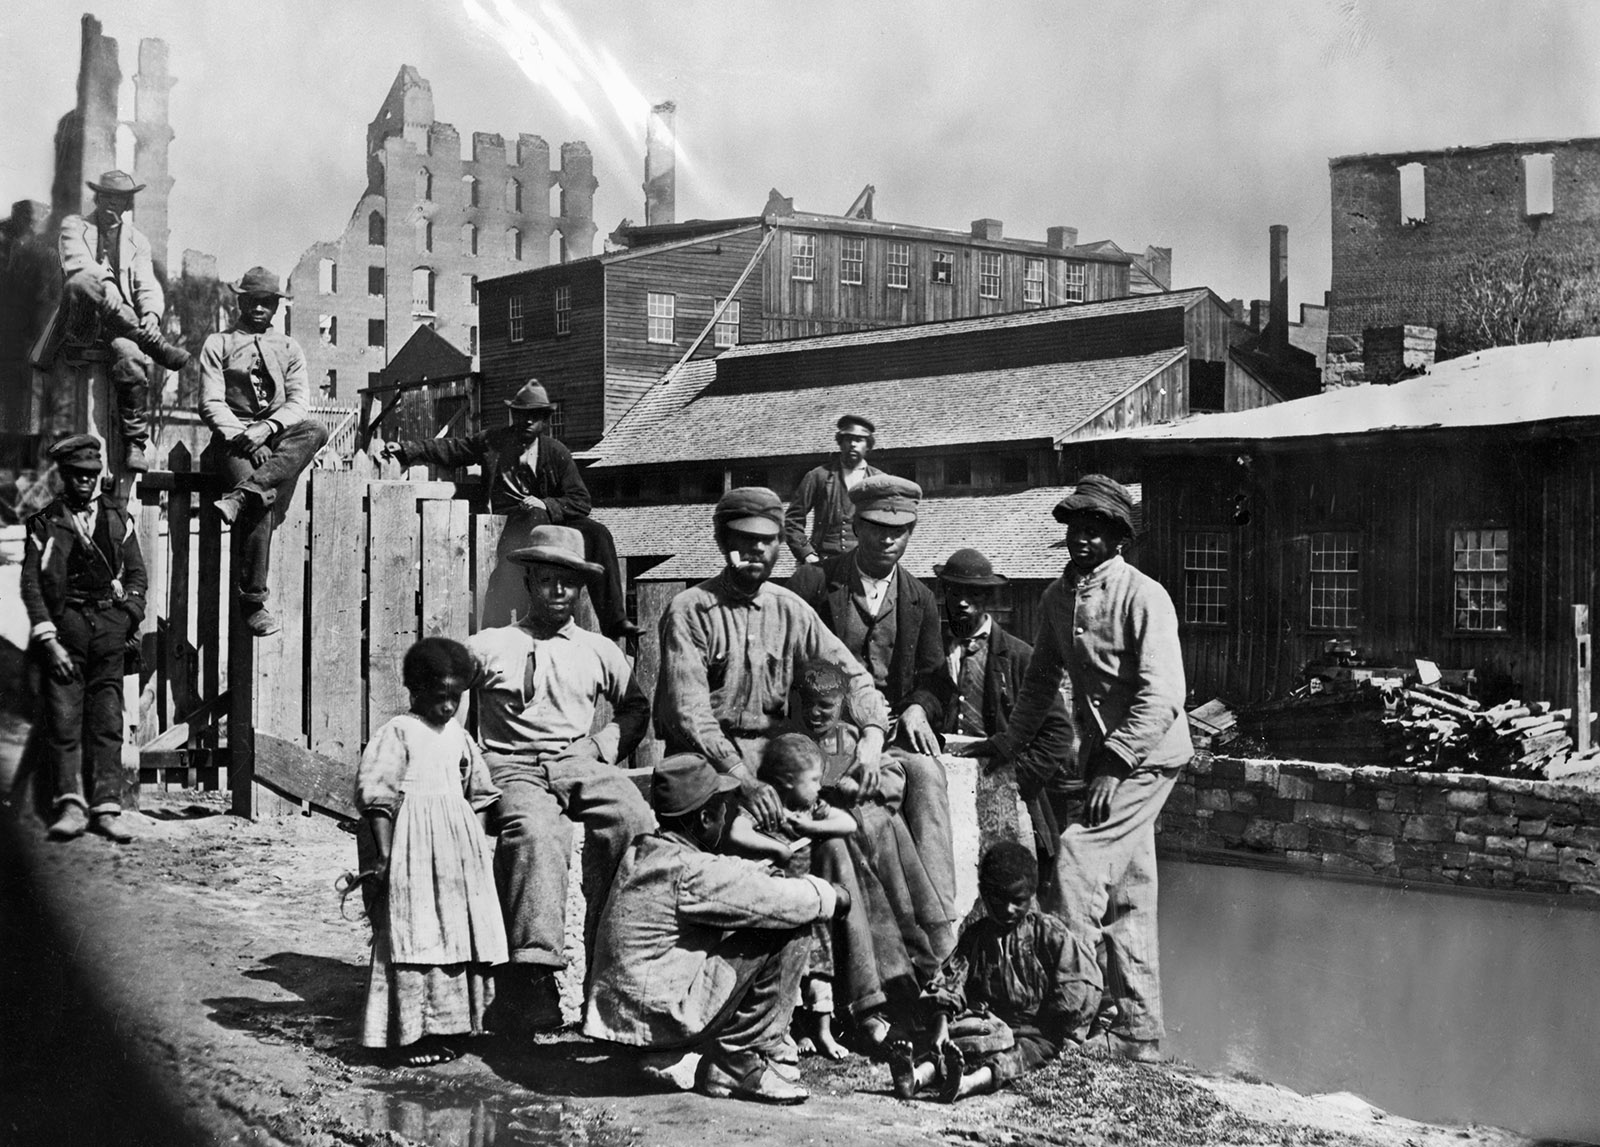 Former enslaved people in a Southern town shortly after the end of the Civil War, circa 1865